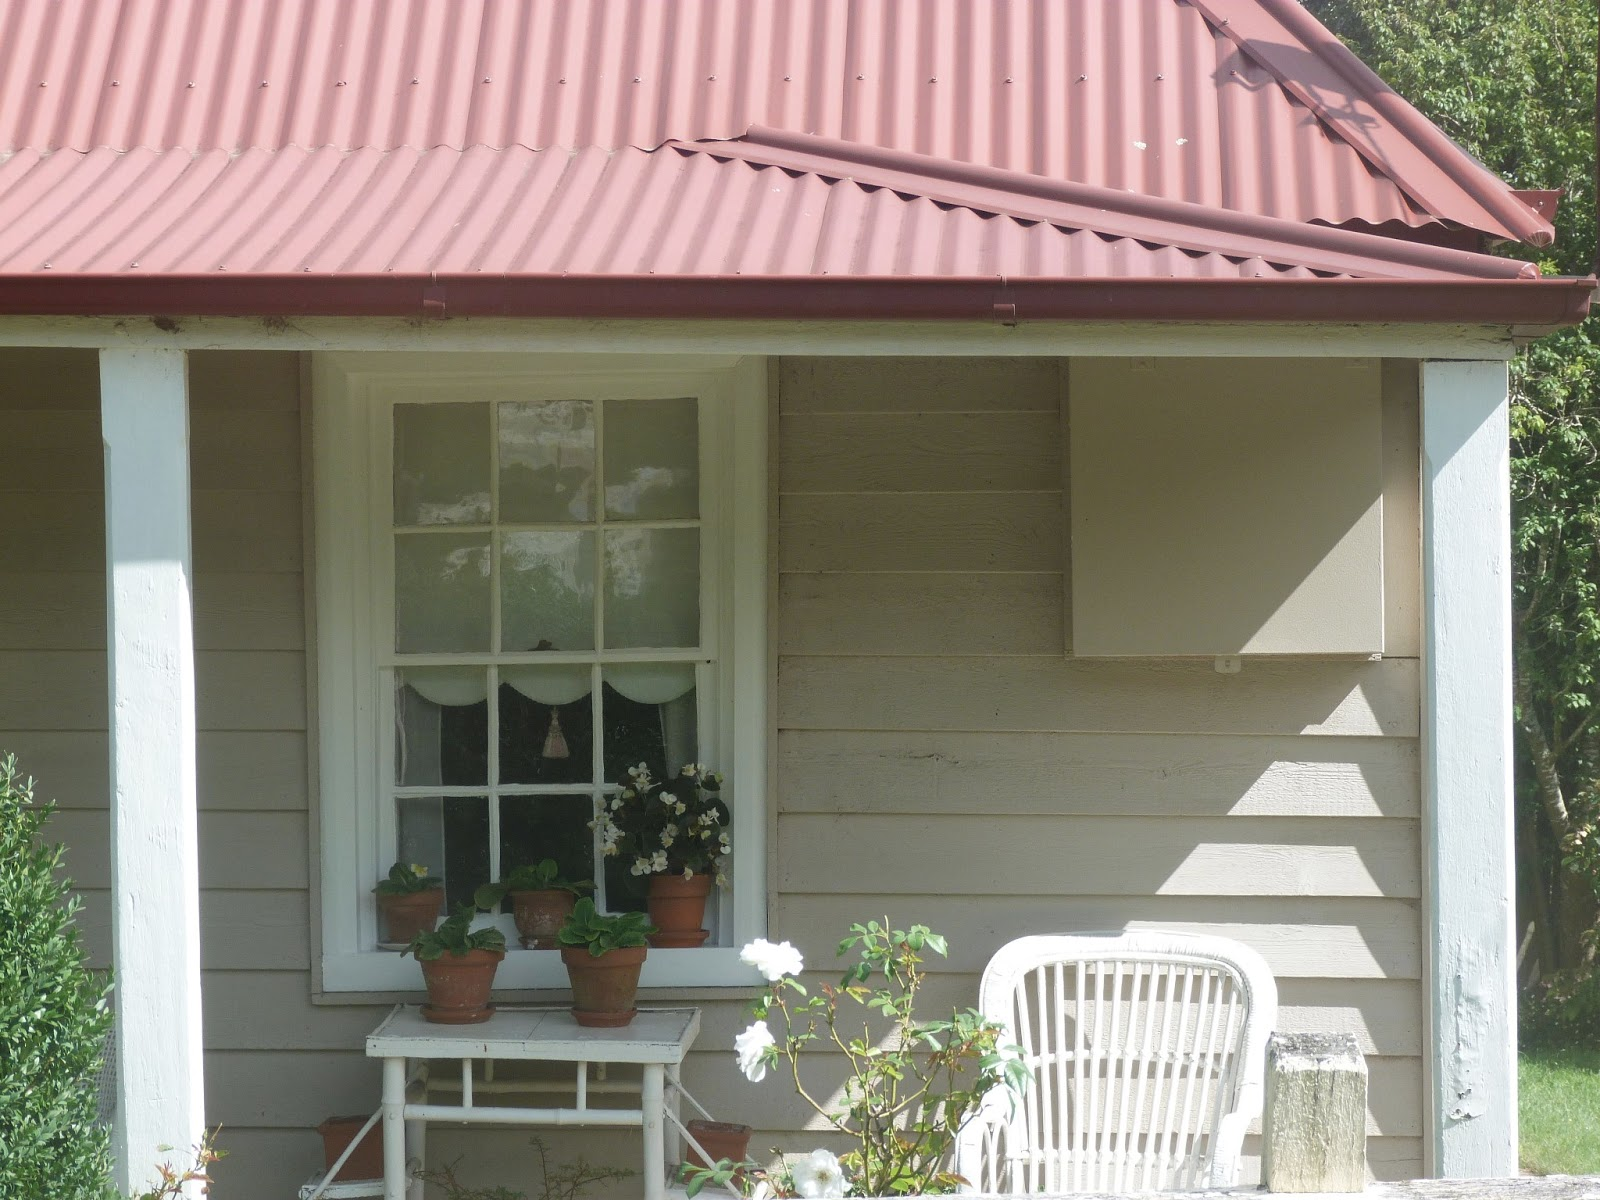 Haymes Paint Exterior Colour Scheme: Colorbond Manor Red Is The Roof,  Haymes Windsor Is The Trims And Haymes Calm Is The Weatherboards |  Pinterest ...